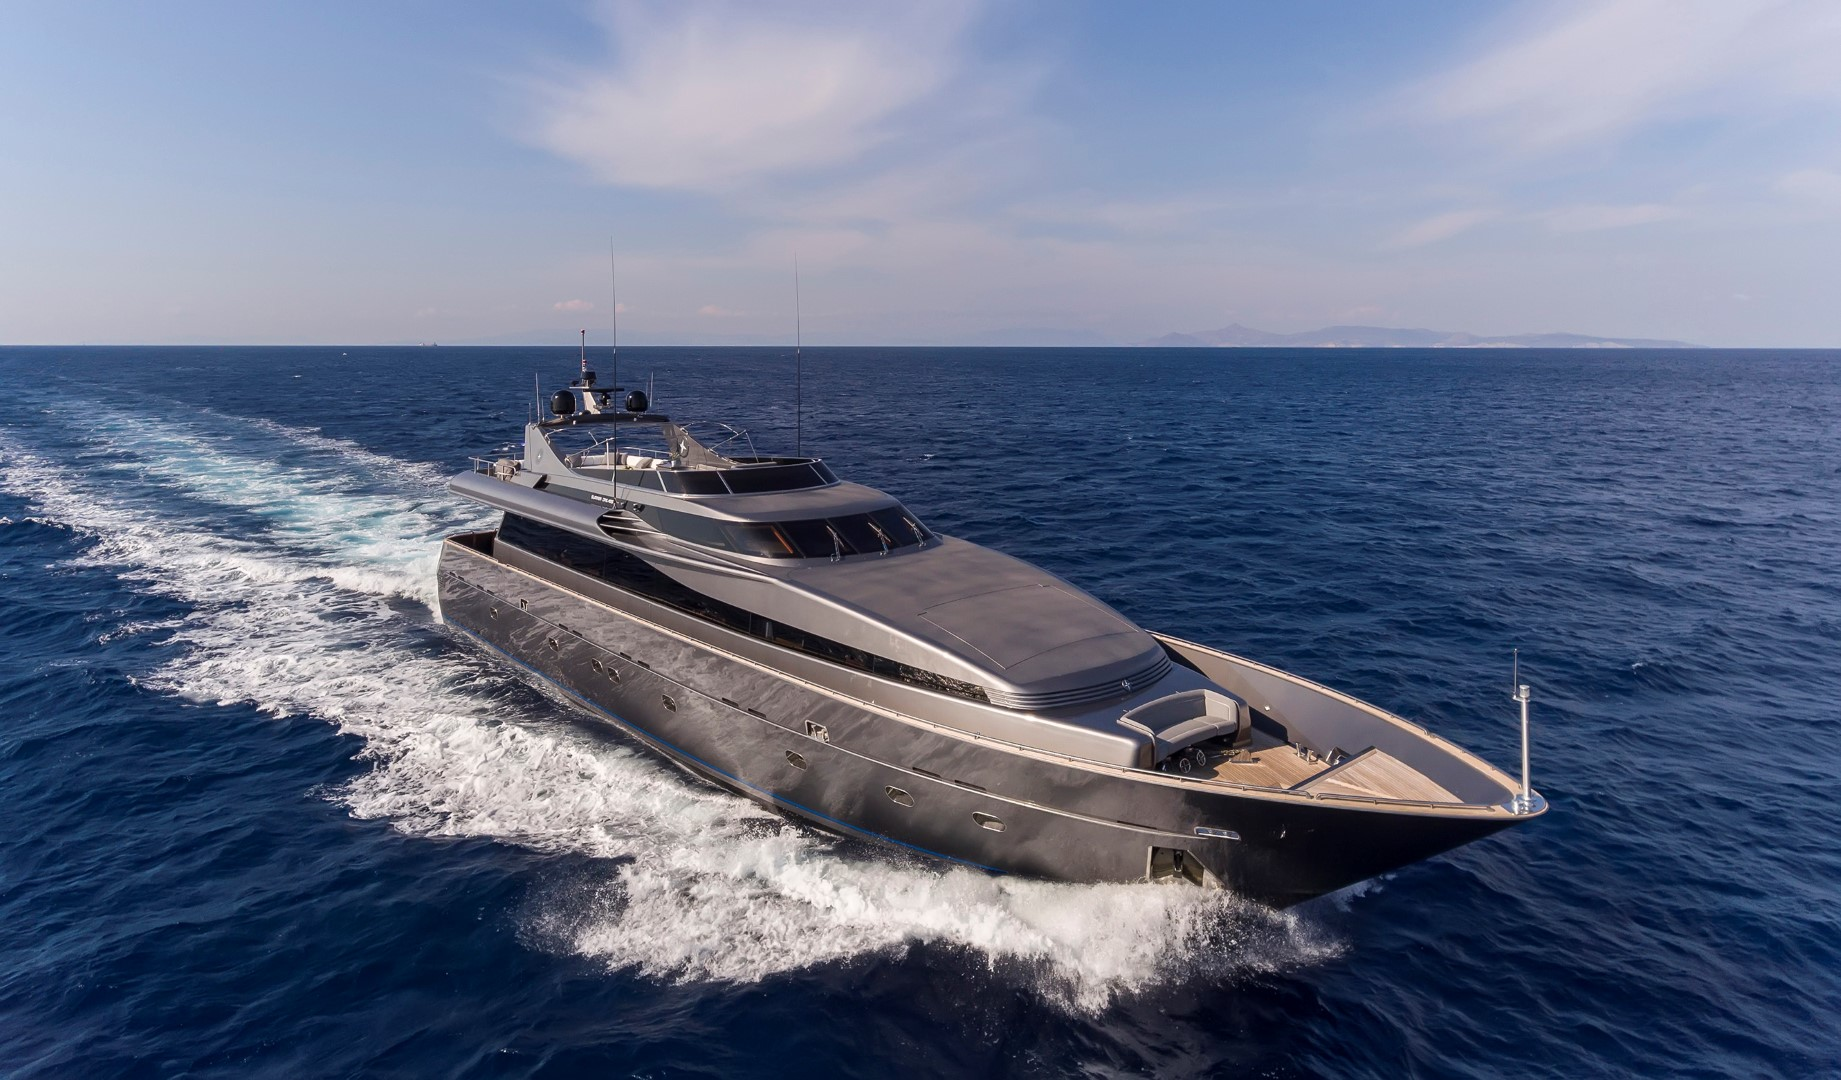 SUMMER DREAMS specs with detailed specification and builder summary